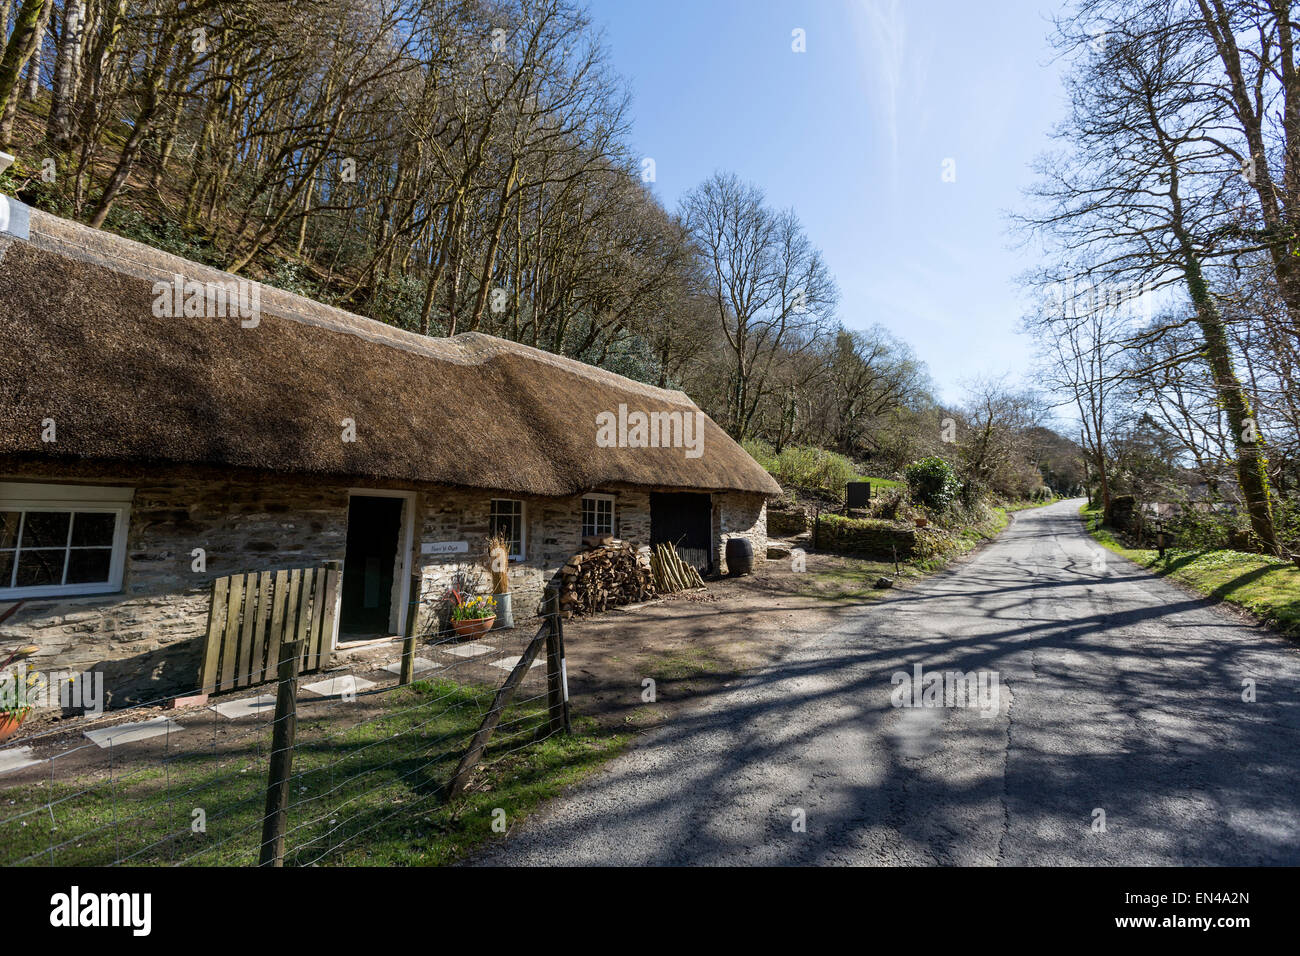 Cottages in Llandysul, Carmarthenshire, Wales - Stock Image